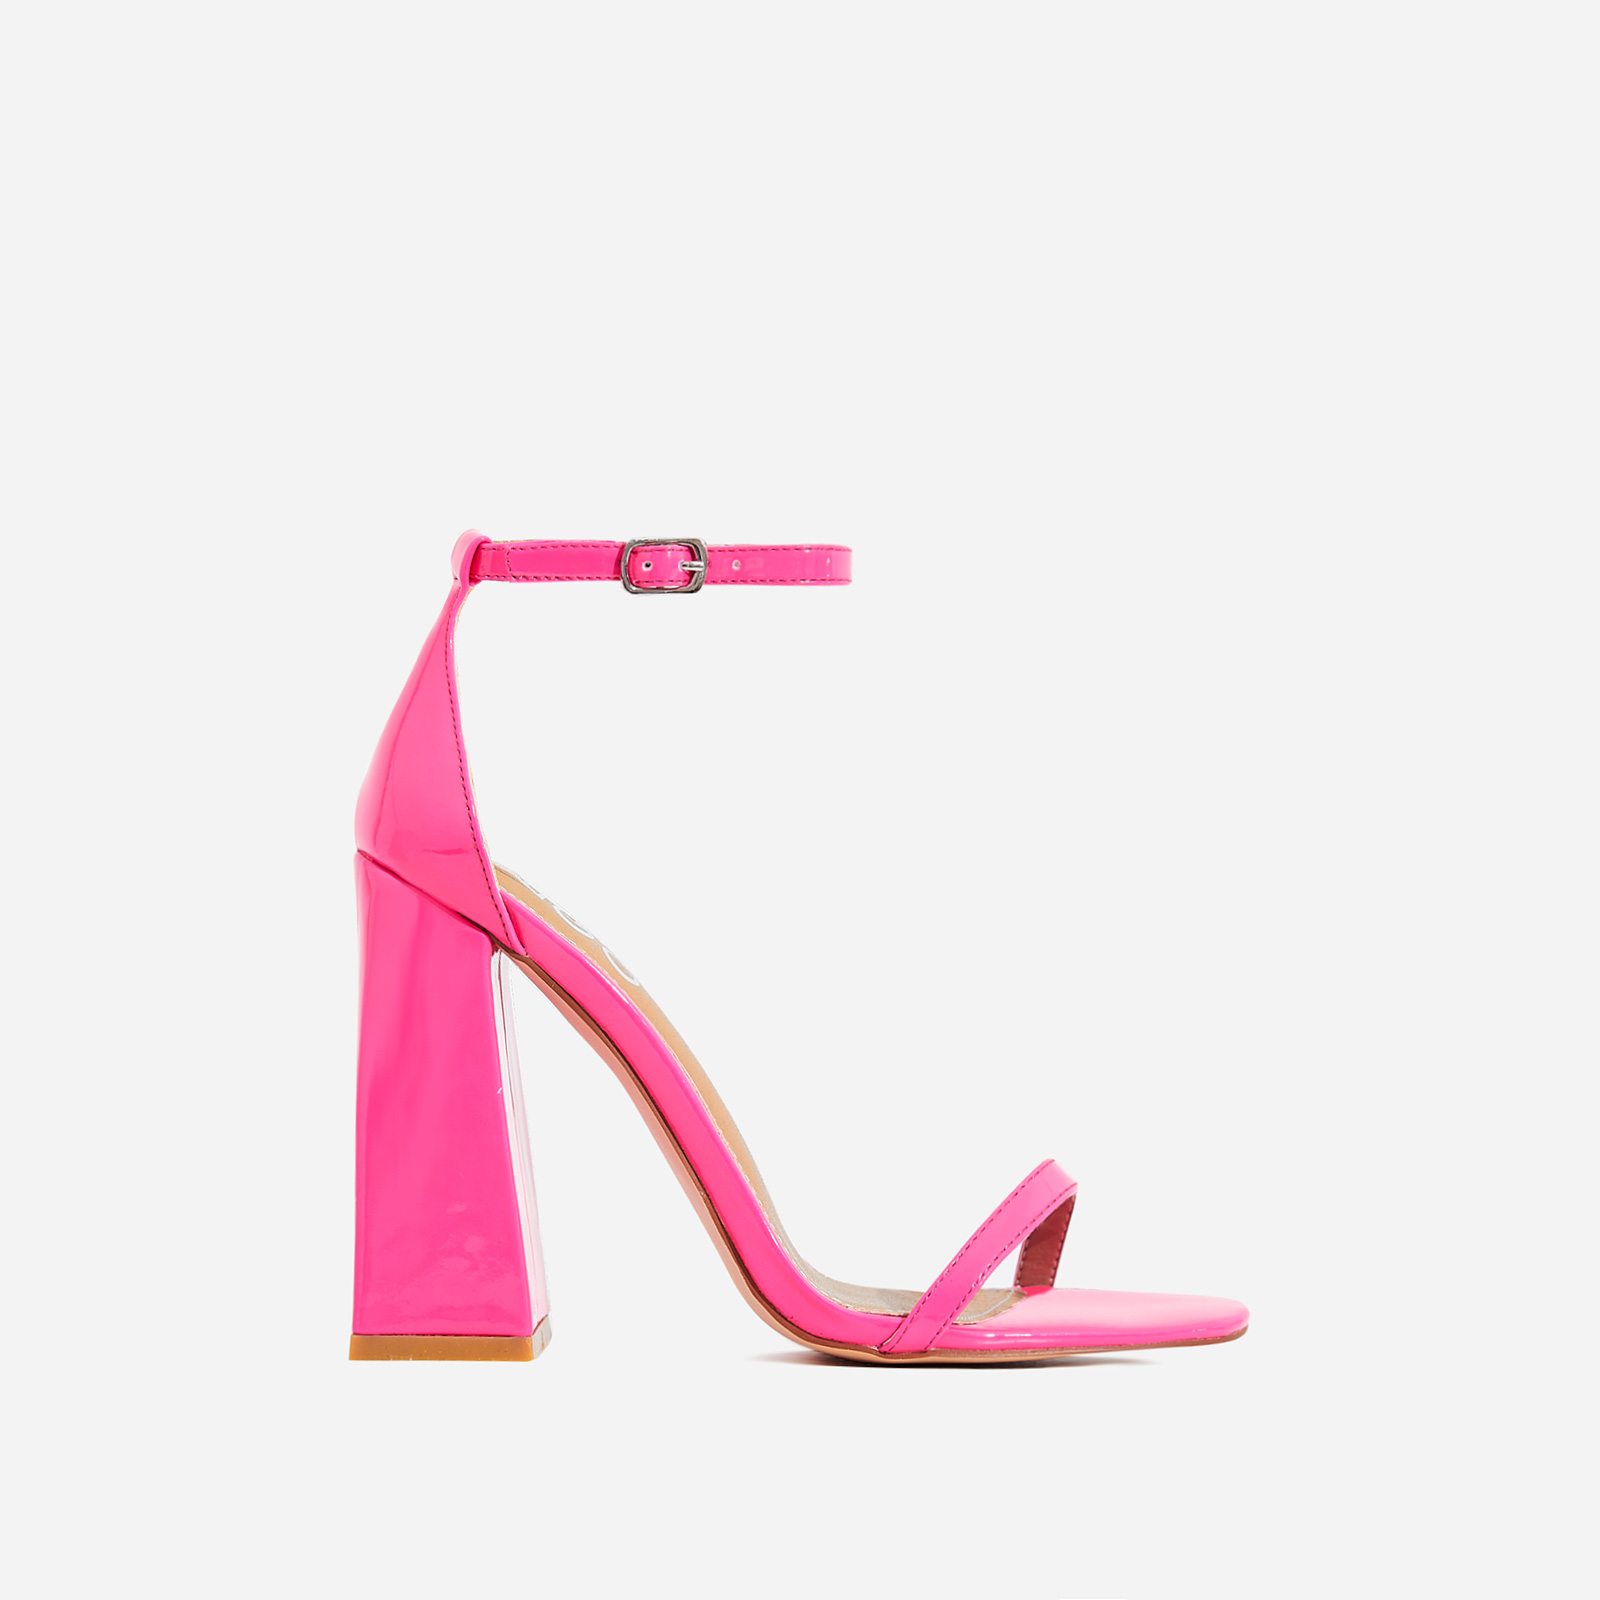 Atomic Square Block Heel In Neon Pink Patent